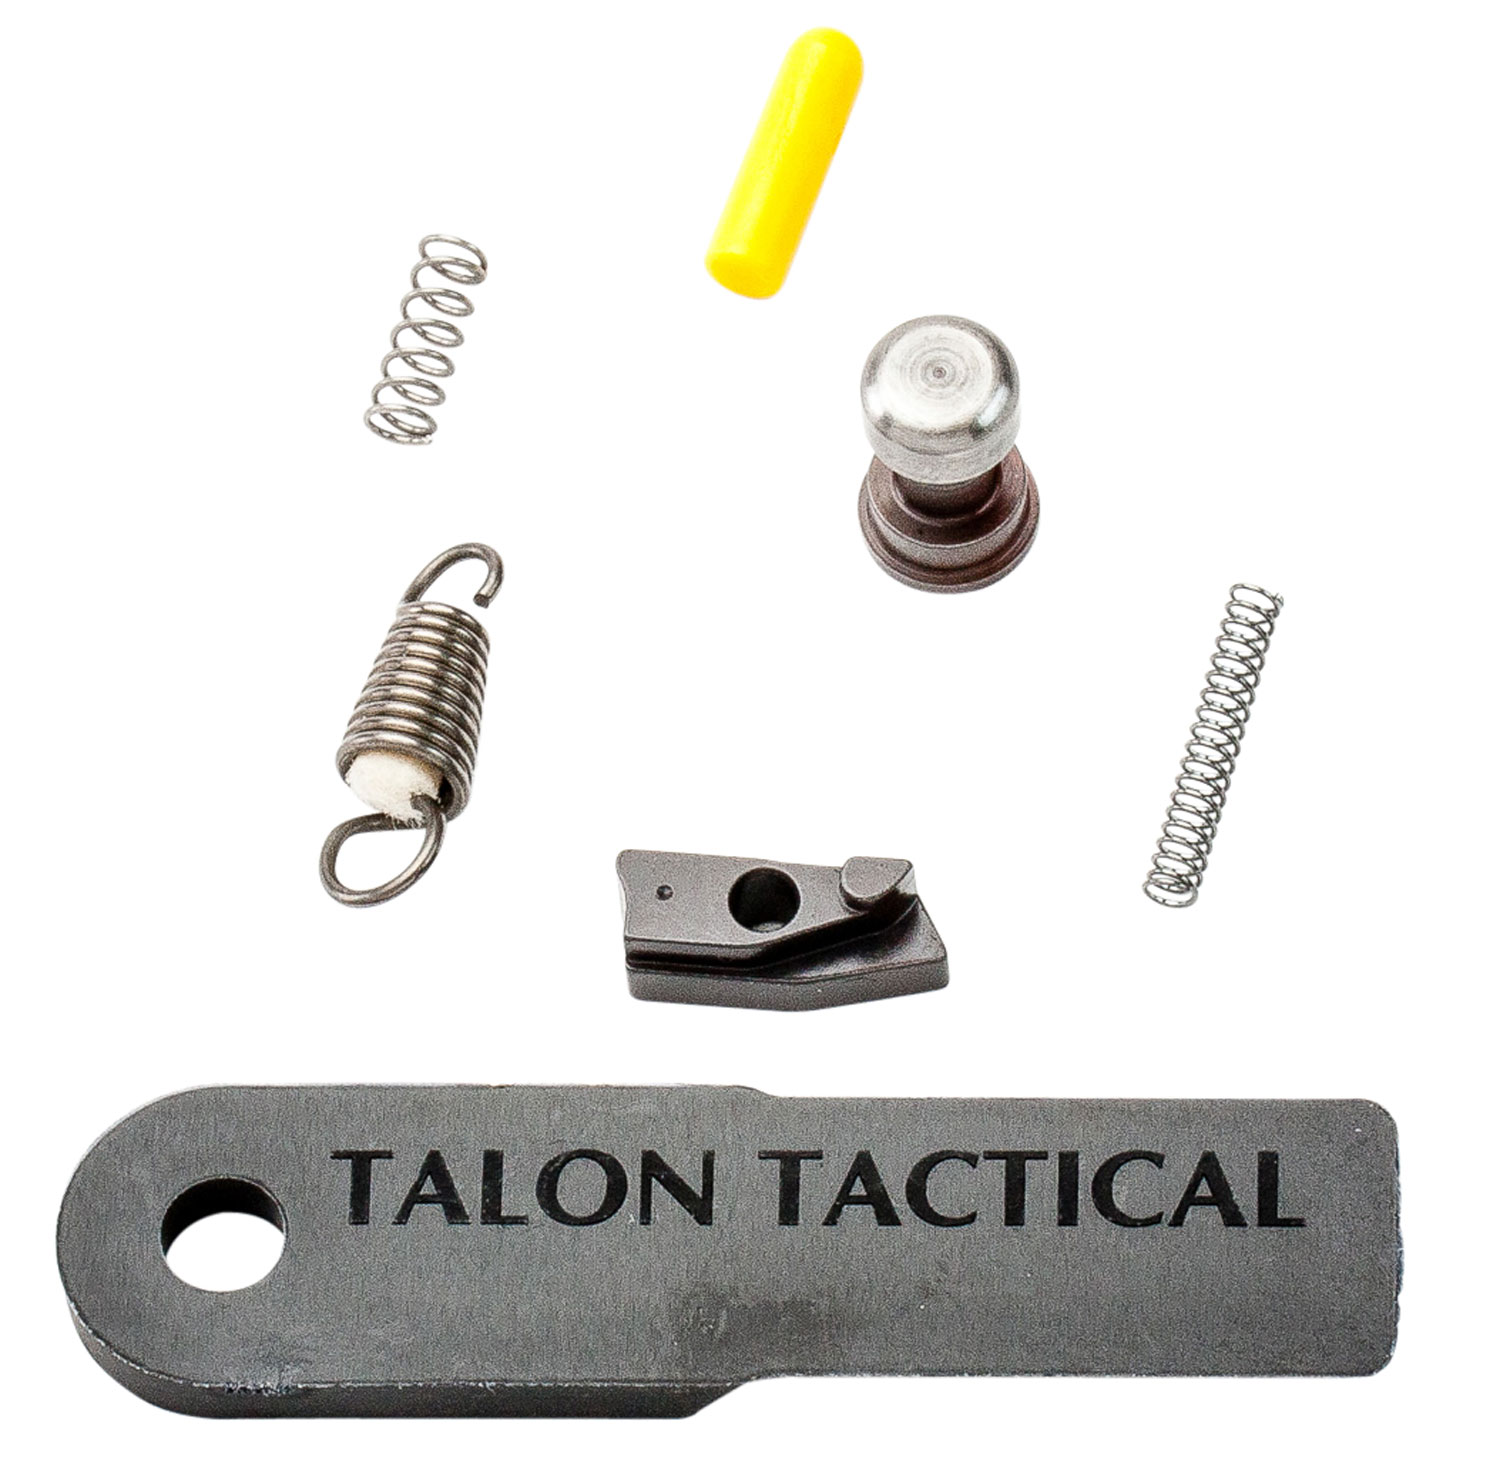 APEX TACTICAL SPECIALTIES 100073 Duty/Carry Action Enhancement Kit S&W M&P 9,40 Metal 1 Kit